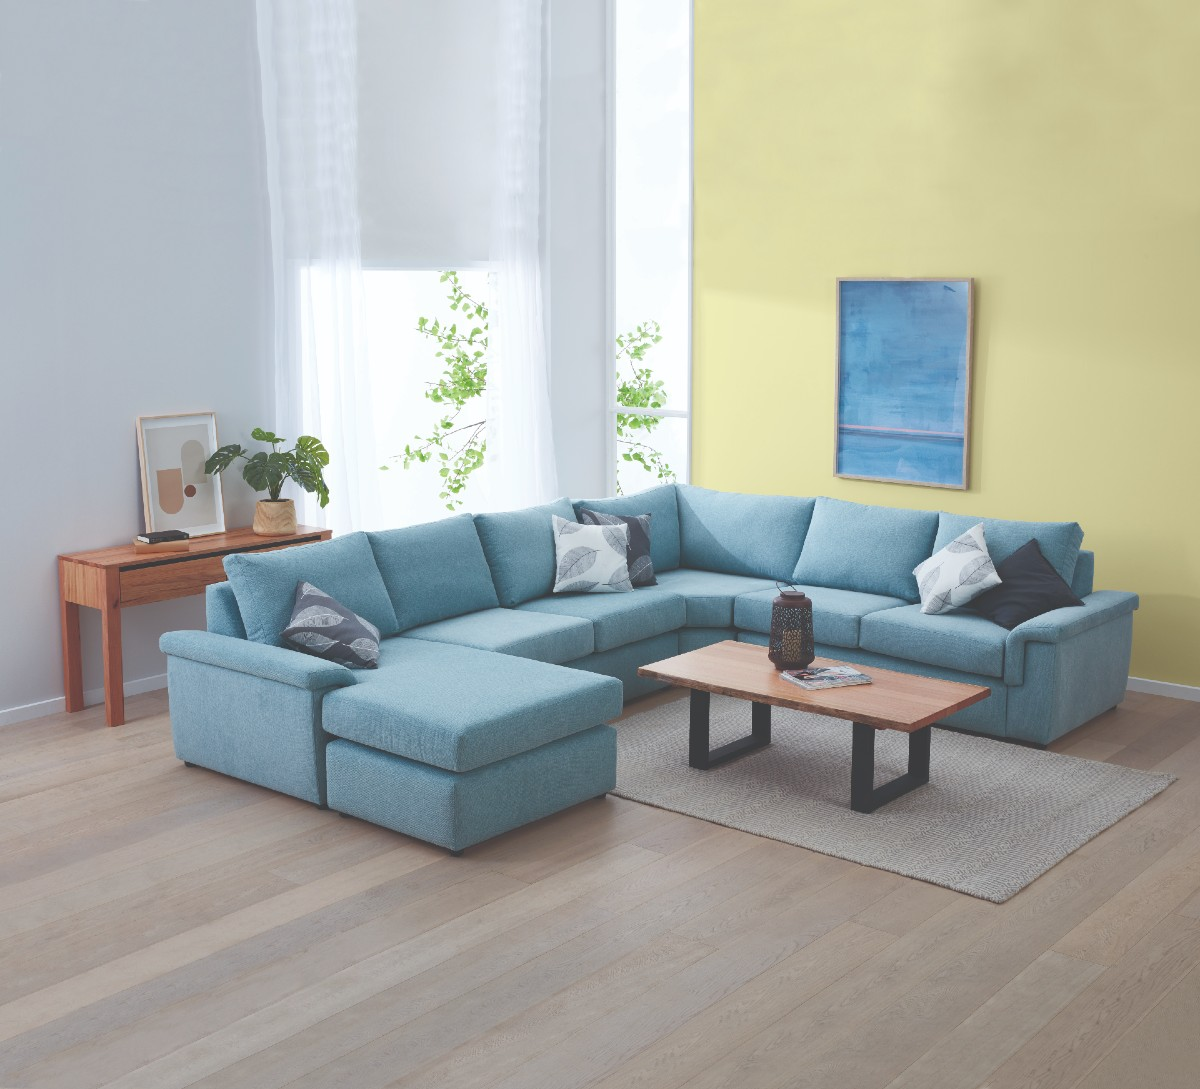 Couches for your Hamilton home.